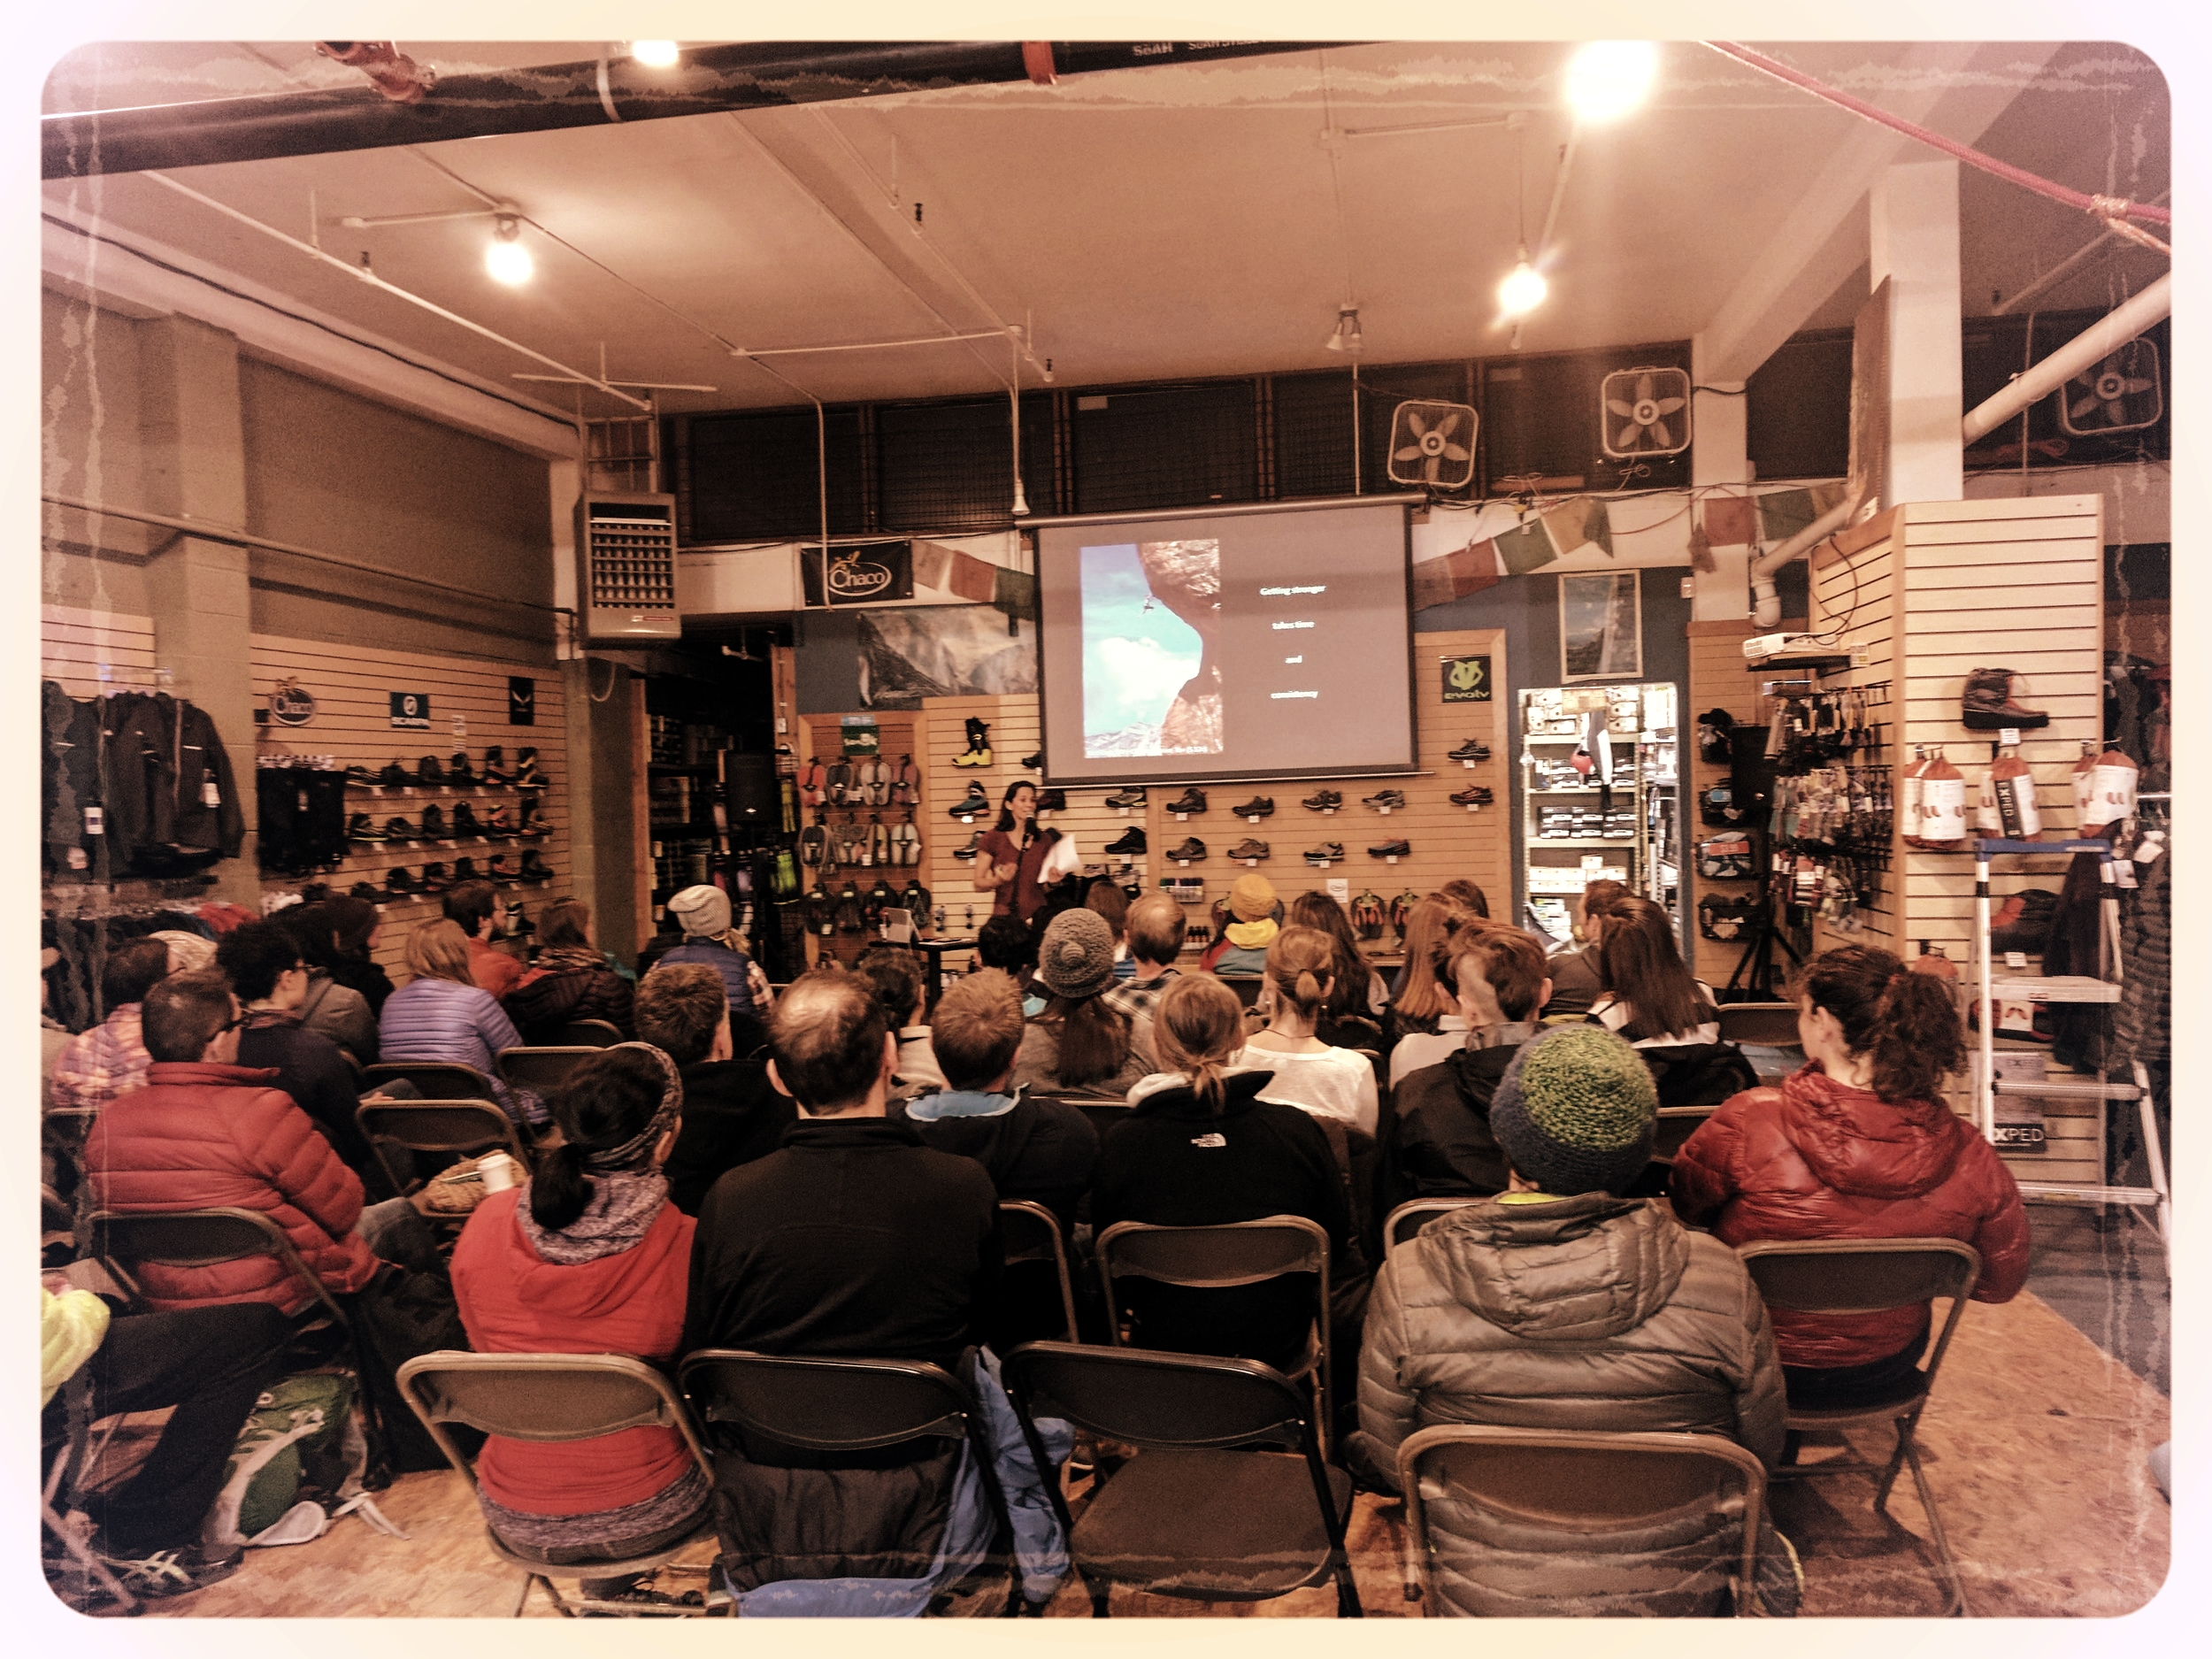 Second Ascent has joined forces with Never Stop Moving to bring women of the climbing community together to be inspired by two bad-ass climbers,  Audrey Sniezek & Mercedes Pollmeier , as they discuss what training strategies work & don't work while incorporating proper nutrition to help meet your short & long-term goals. Walk away from the event with an appreciation for movement training and the benefits to one's climbing and overall fitness.